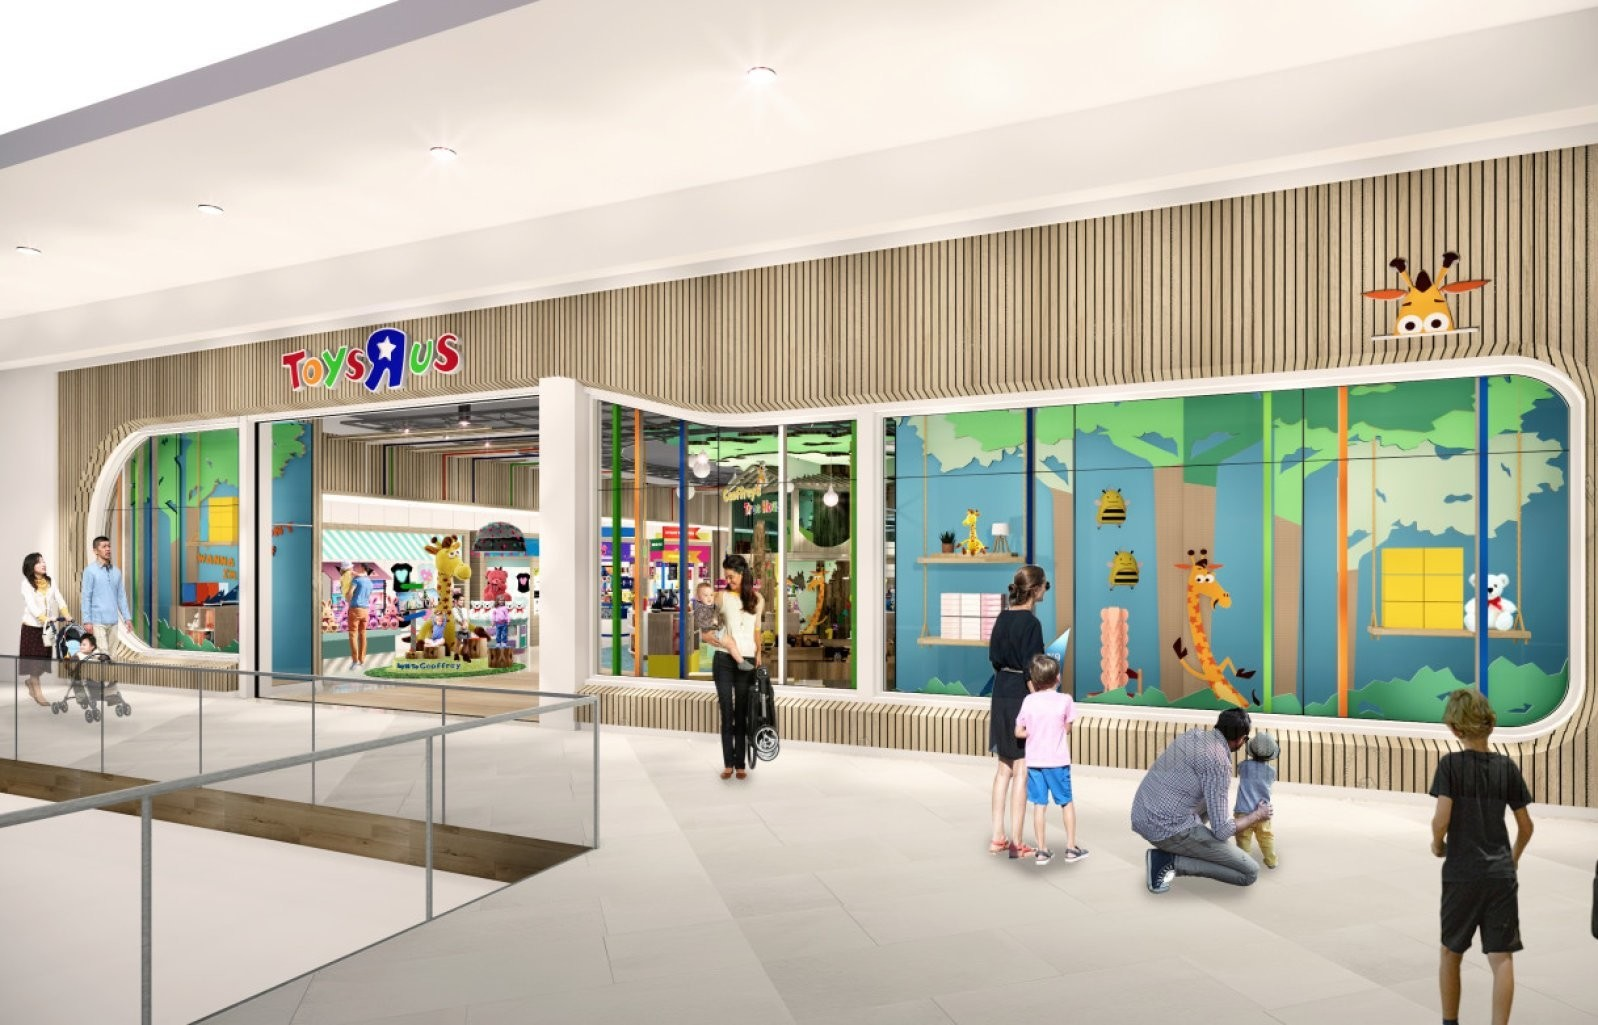 """Toys""""R""""Us, , The Galleria, Retail, , New Jersey, Tru Kids, Shopping Centre, , Chain store, Toys""""R""""Us, Building, Shopping mall, Architecture, Interior design, Retail, Lobby, Facade, Leisure, Mixed-use"""